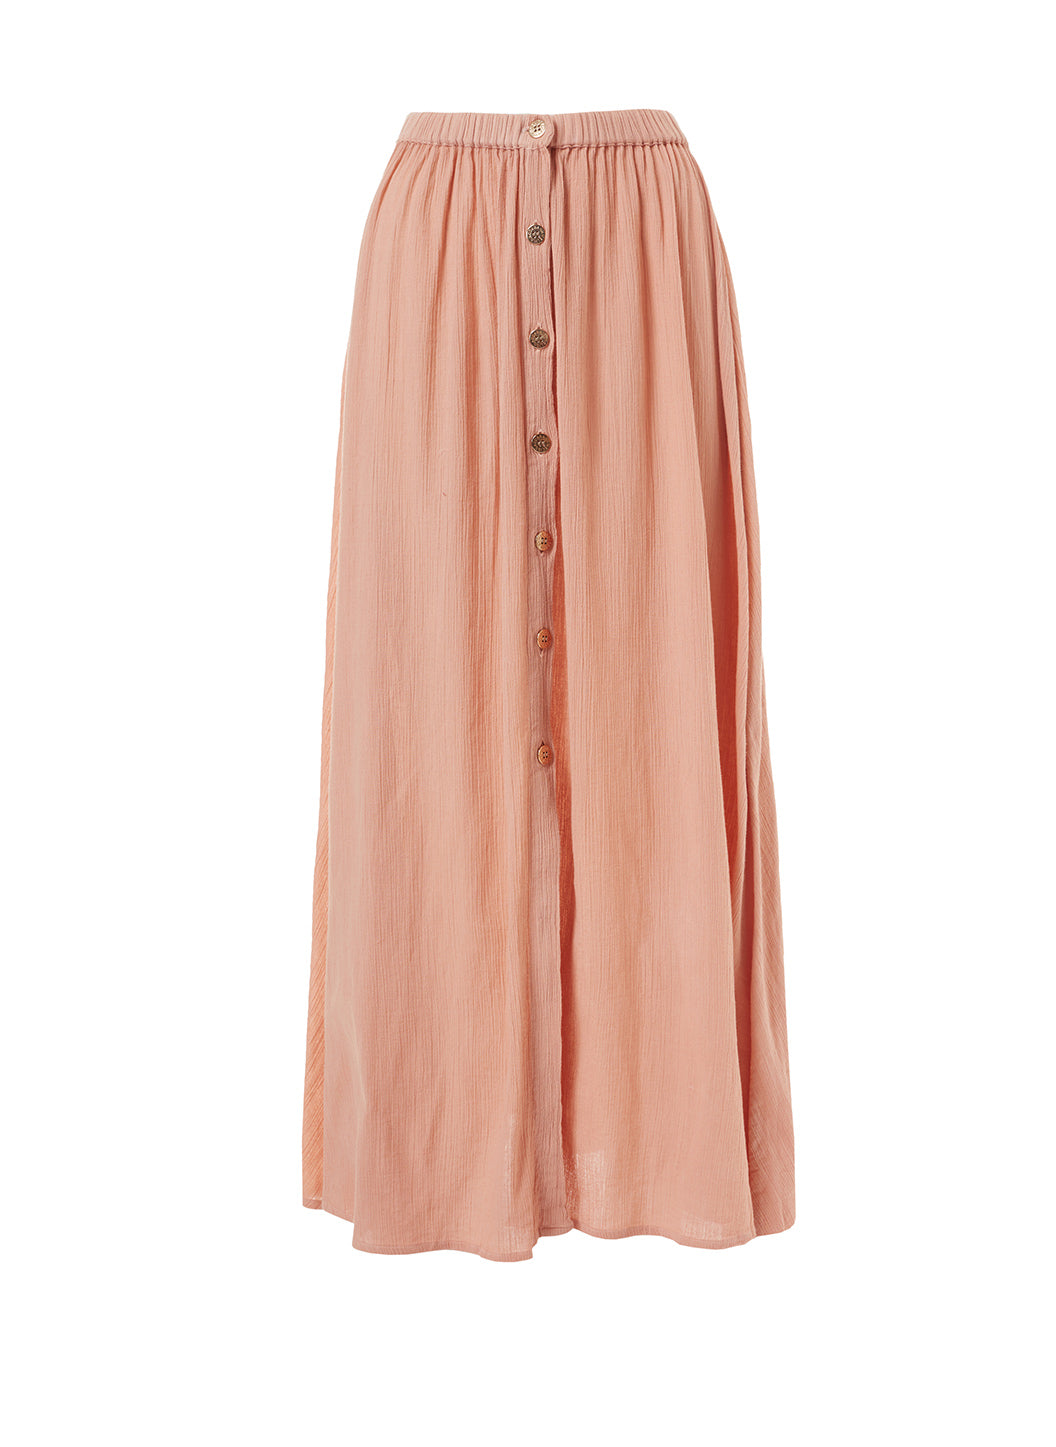 Dru Tan Button-Down Maxi Skirt - Melissa Odabash Tops & Bottoms